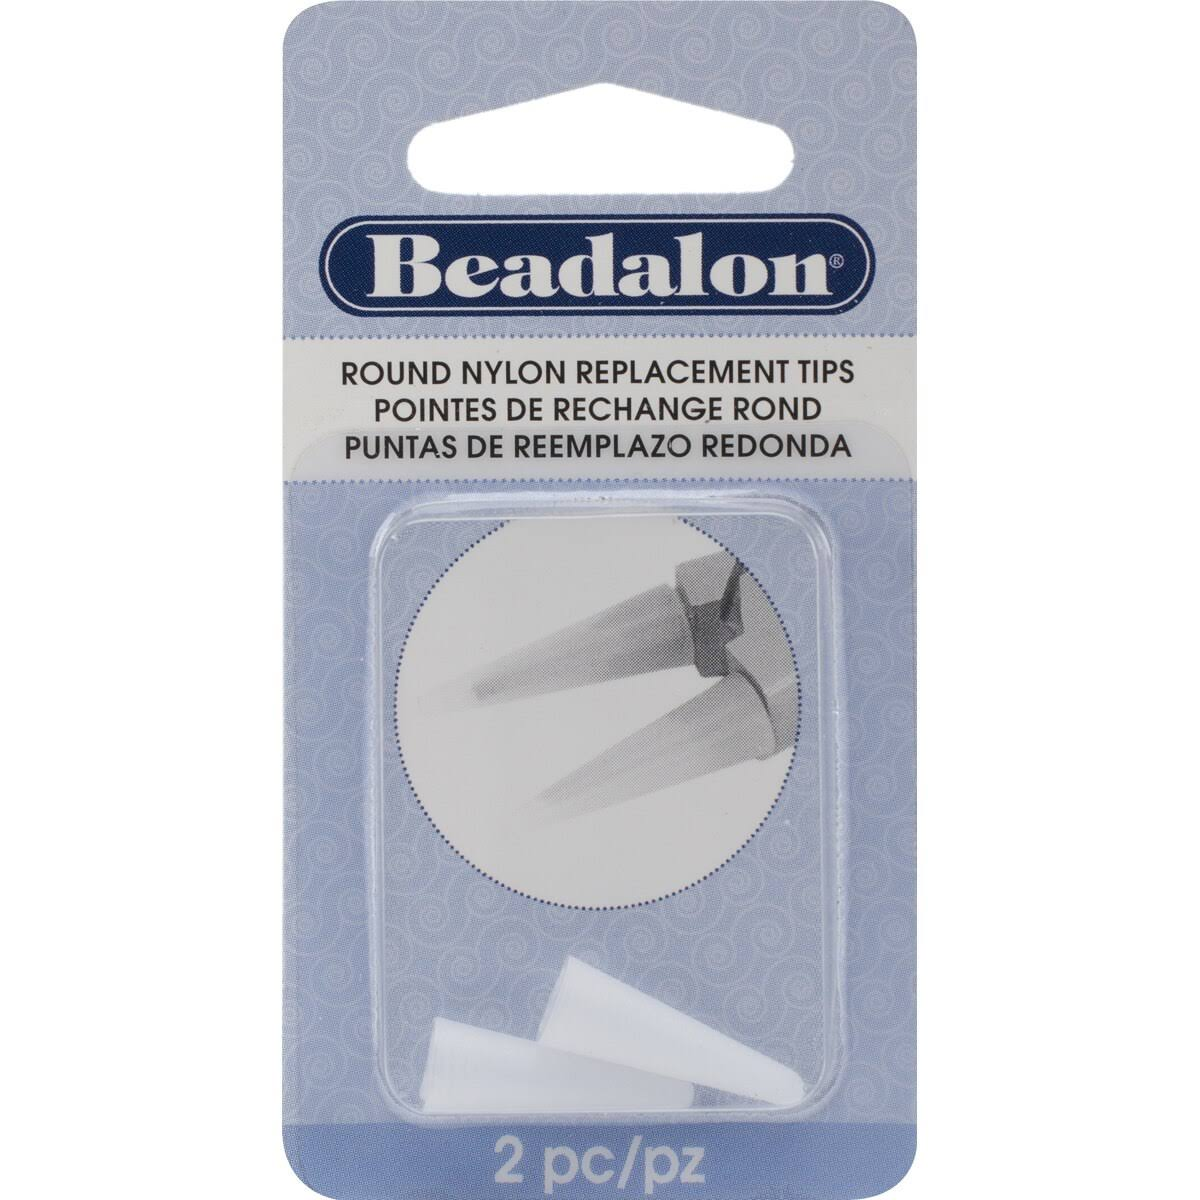 Beadalon Nylon Replacement Tips - for Round Nose Pliers, 2ct